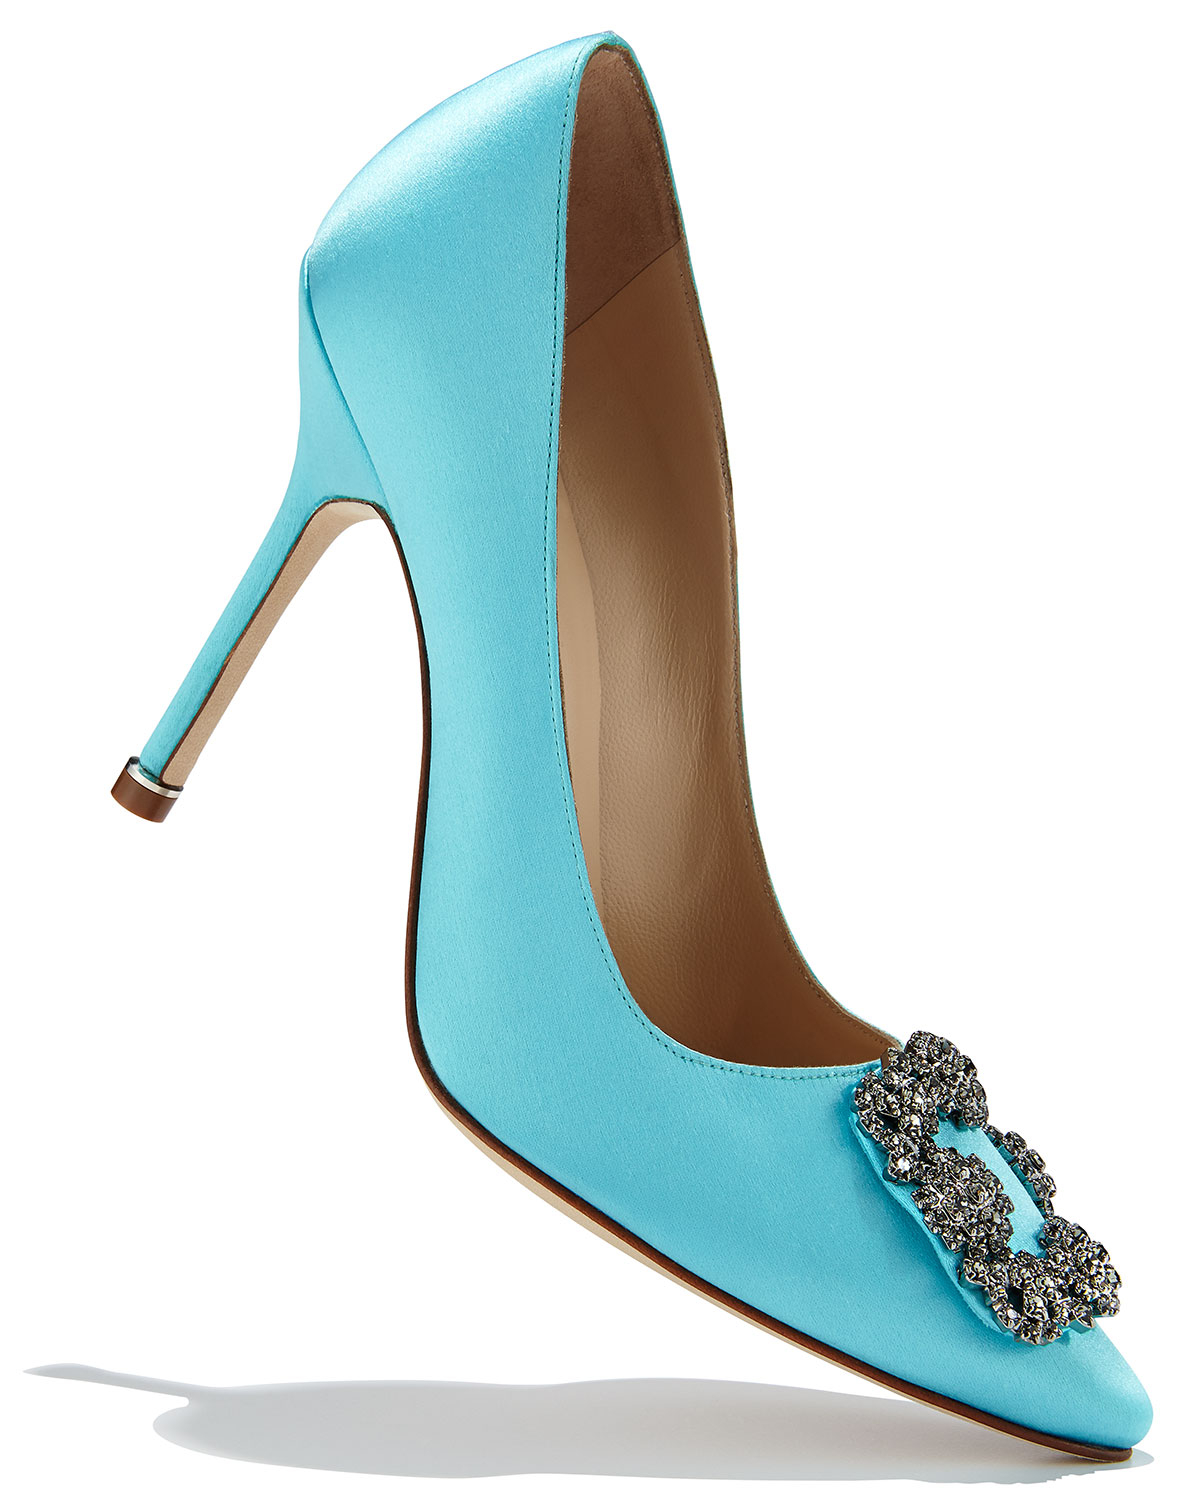 Lyst manolo blahnik hangisi satin pump in blue for Who is manolo blahnik